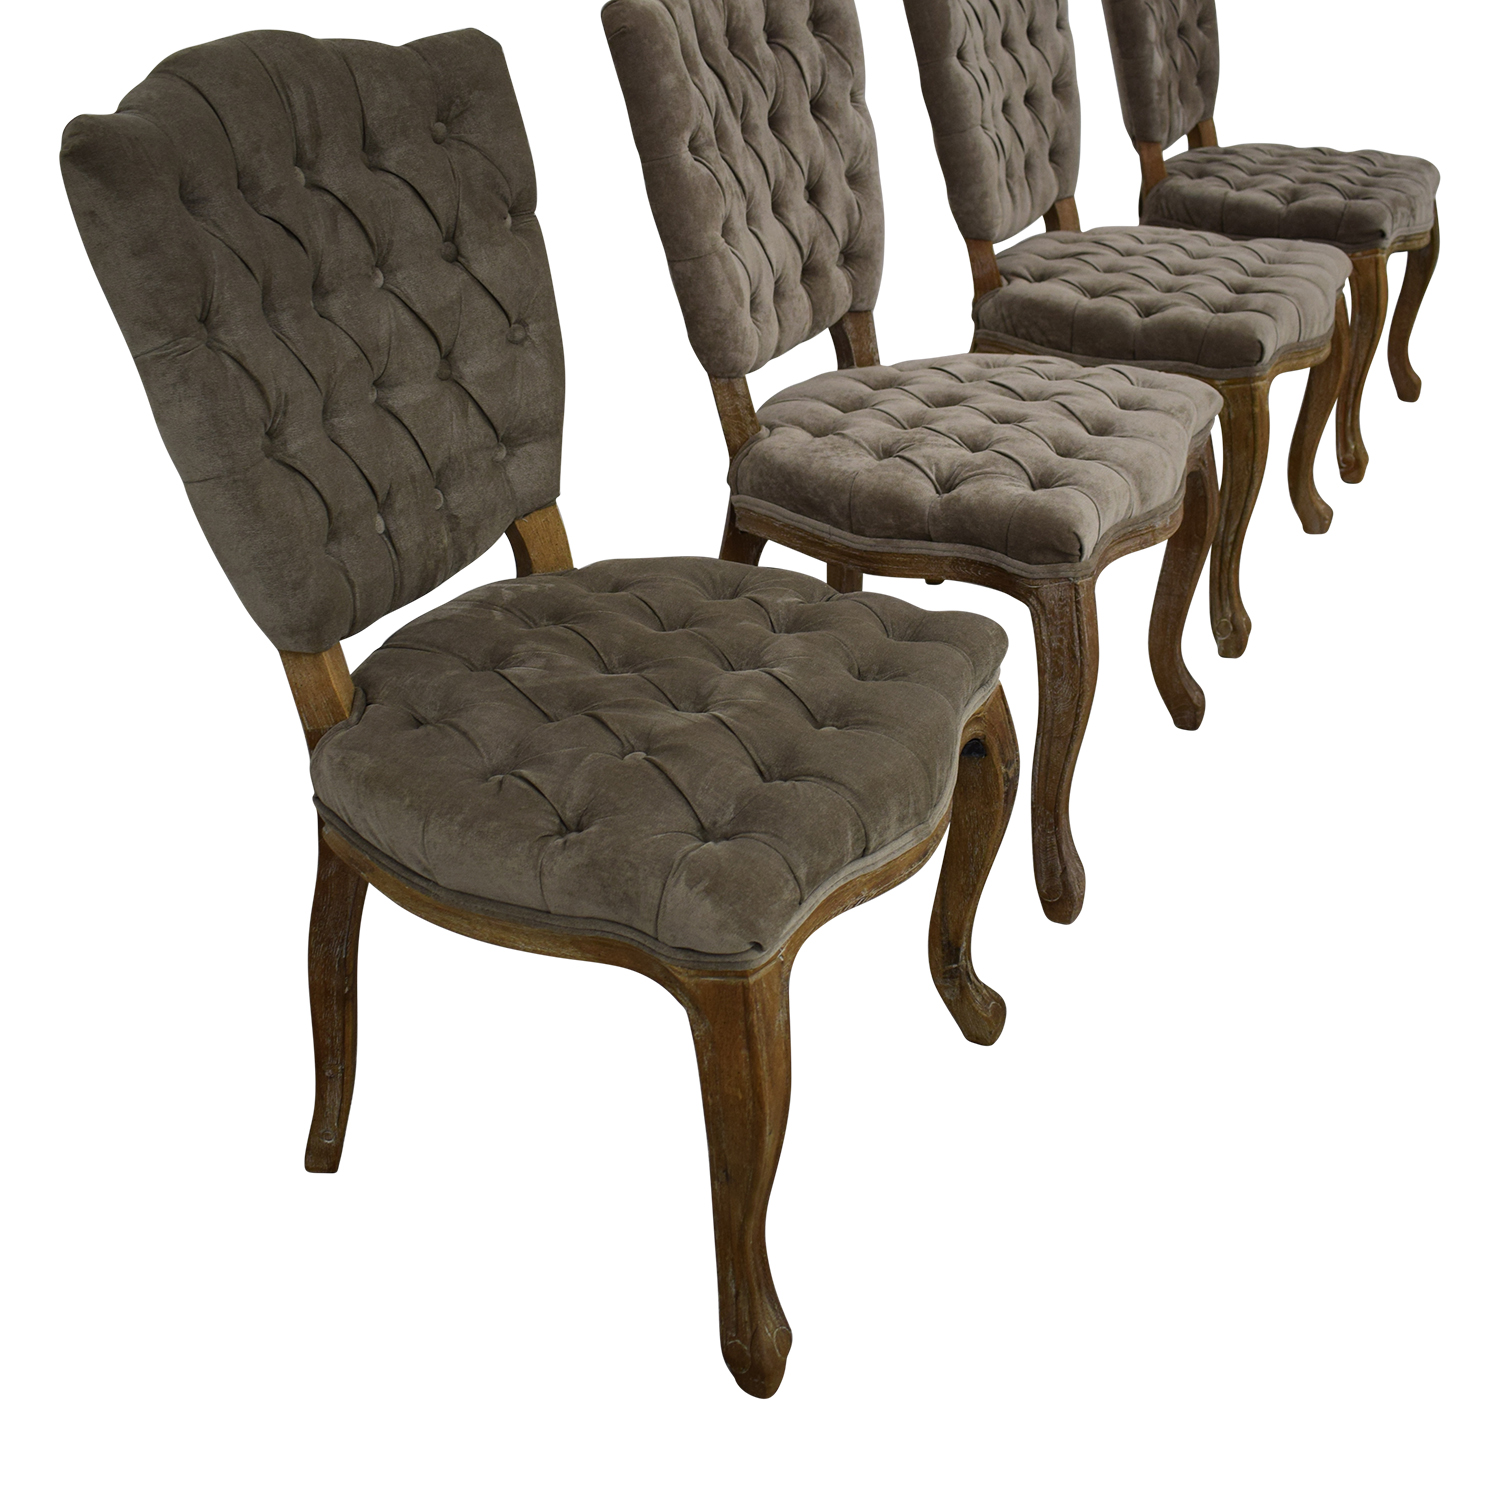 shop Arhaus Ava Side Chairs Arhaus Chairs